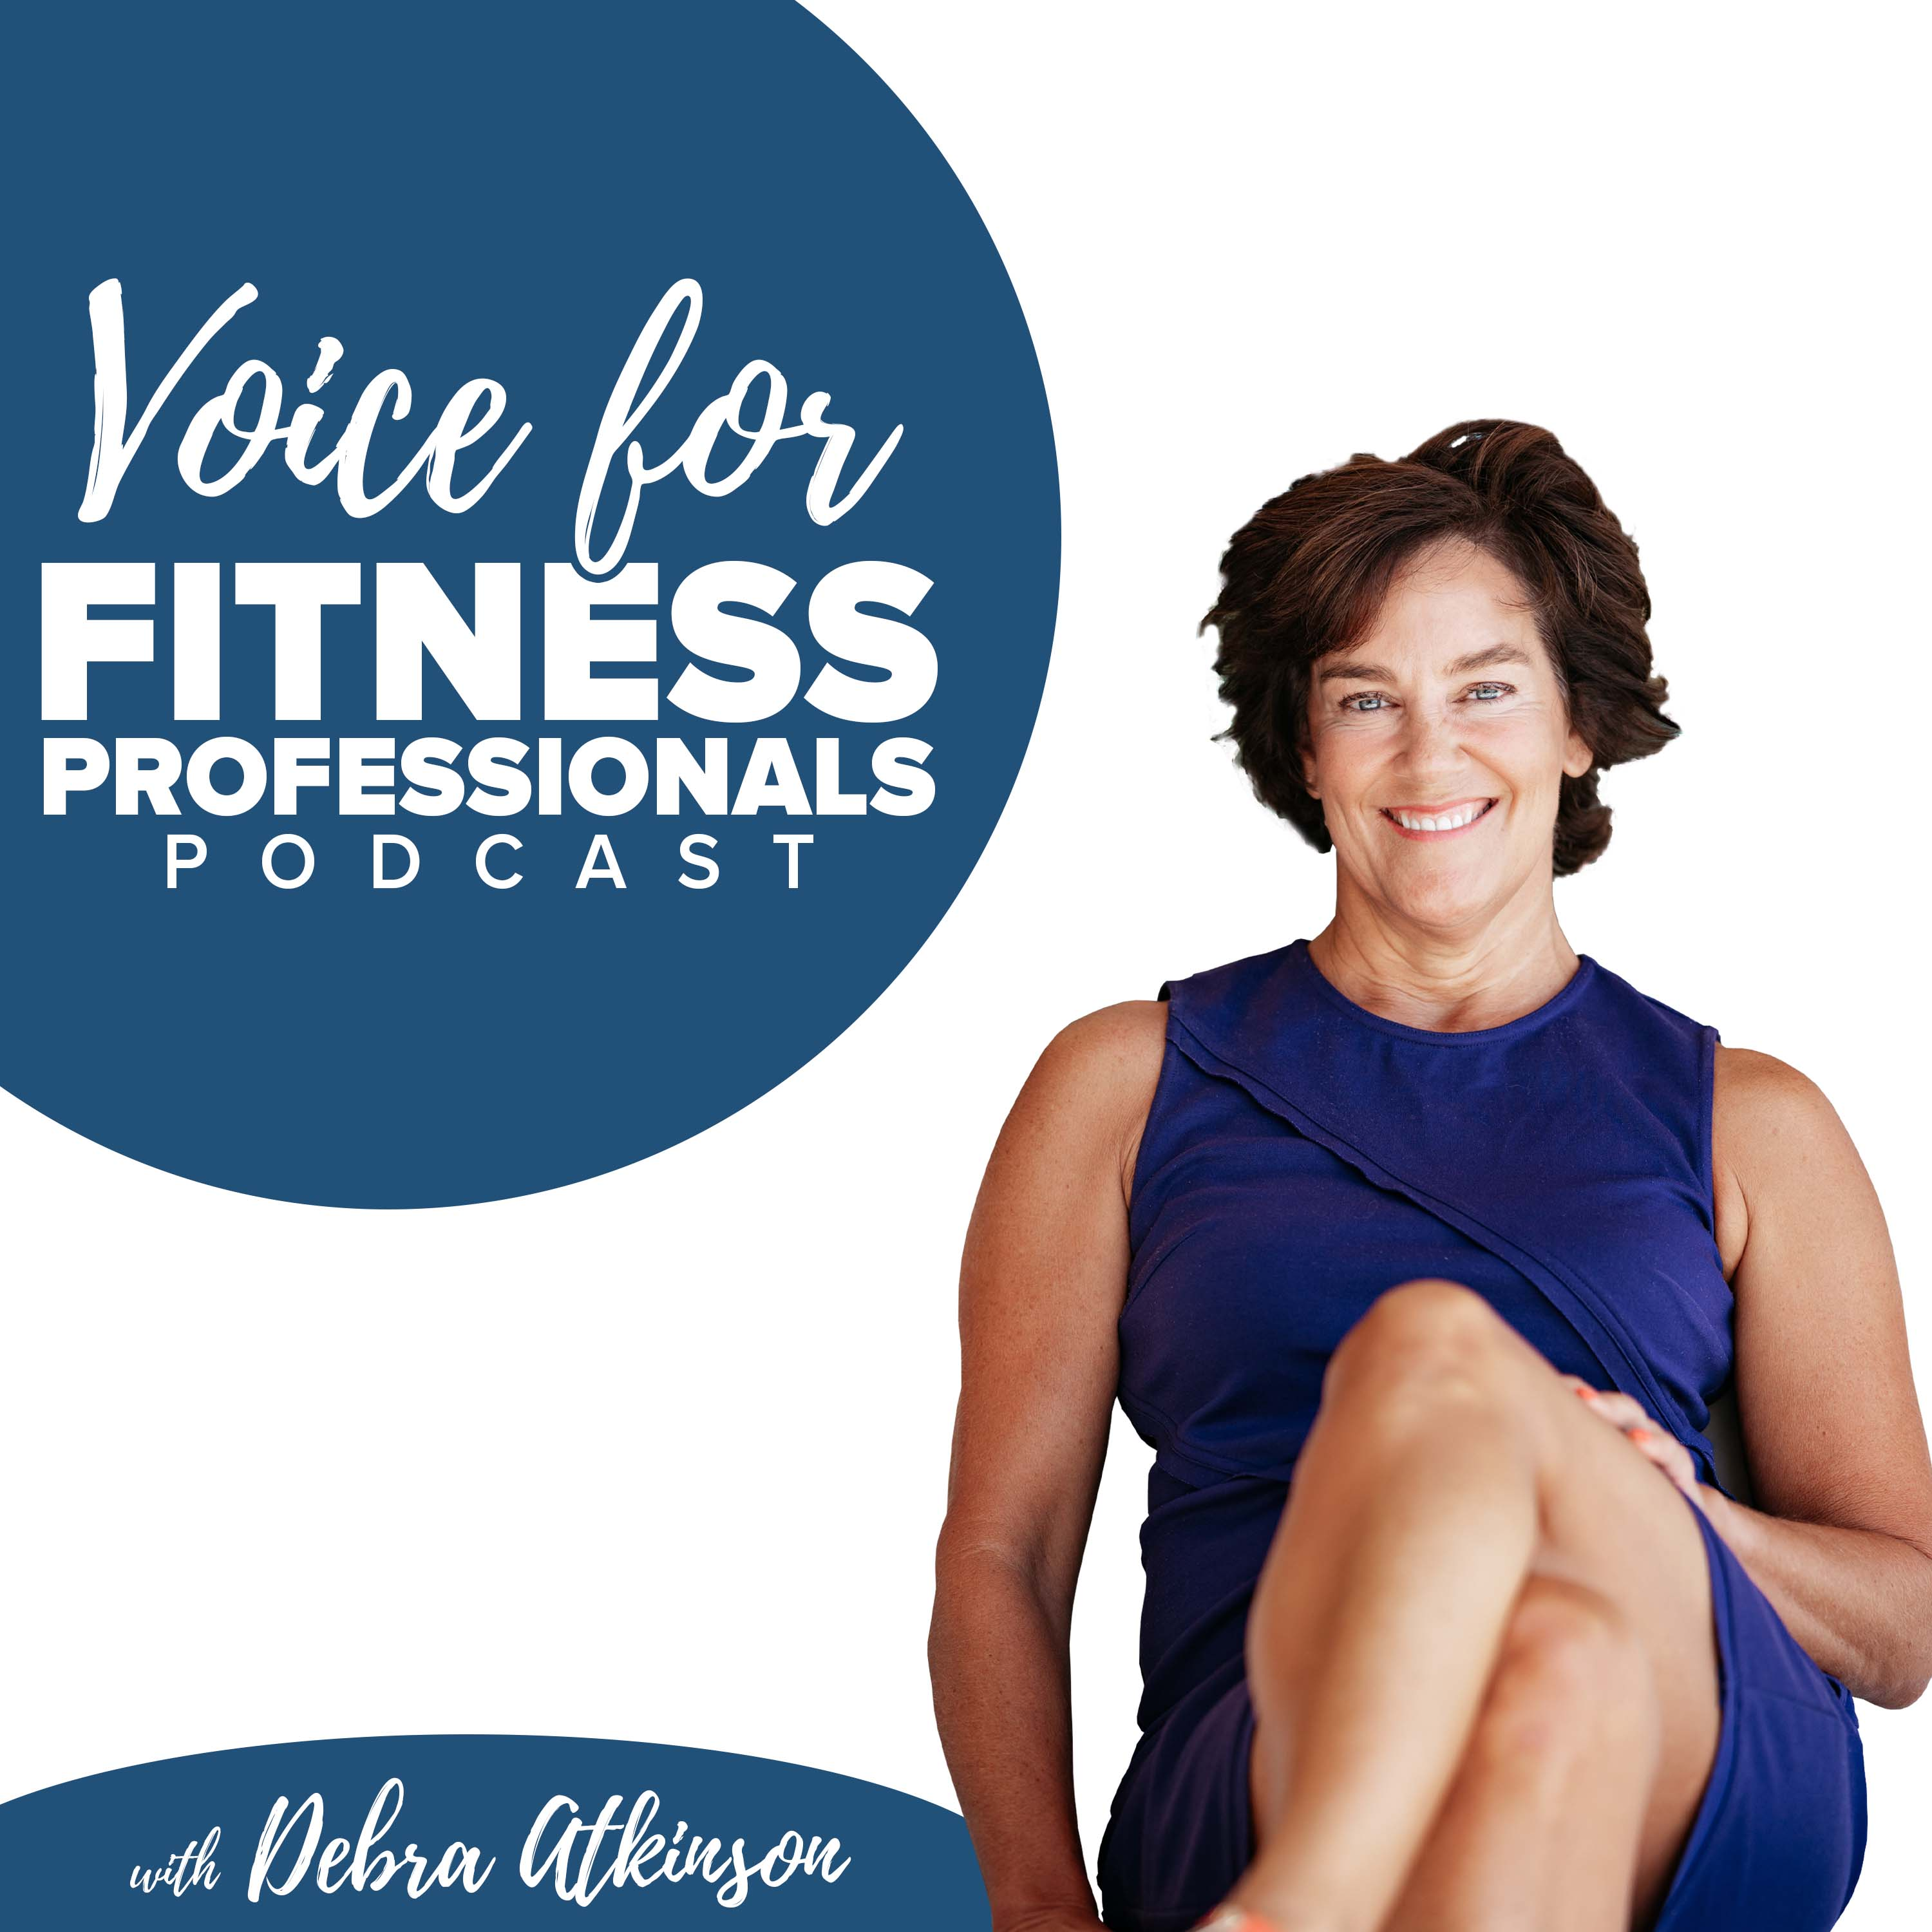 voice-for-fitness-professionals-podcast-3